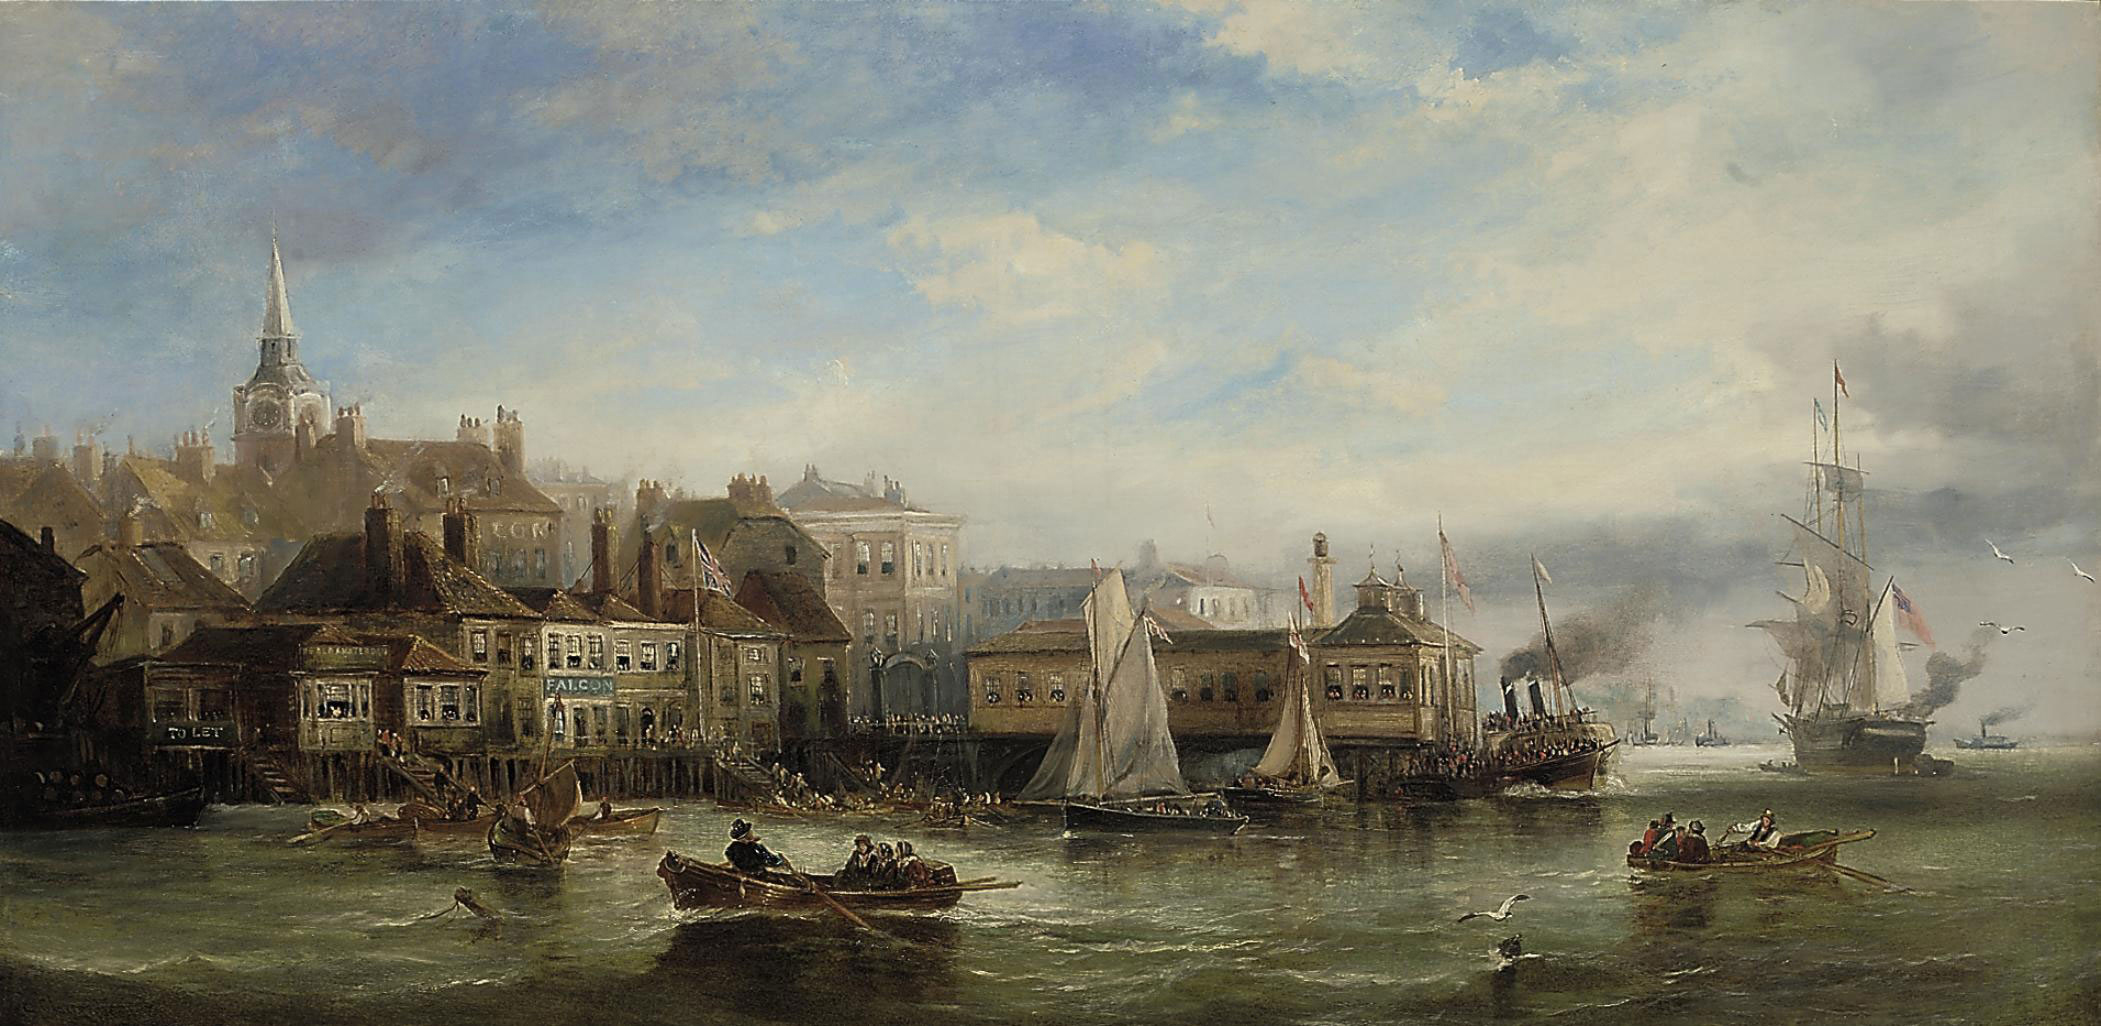 A hive of activity on the Thames at Gravesend